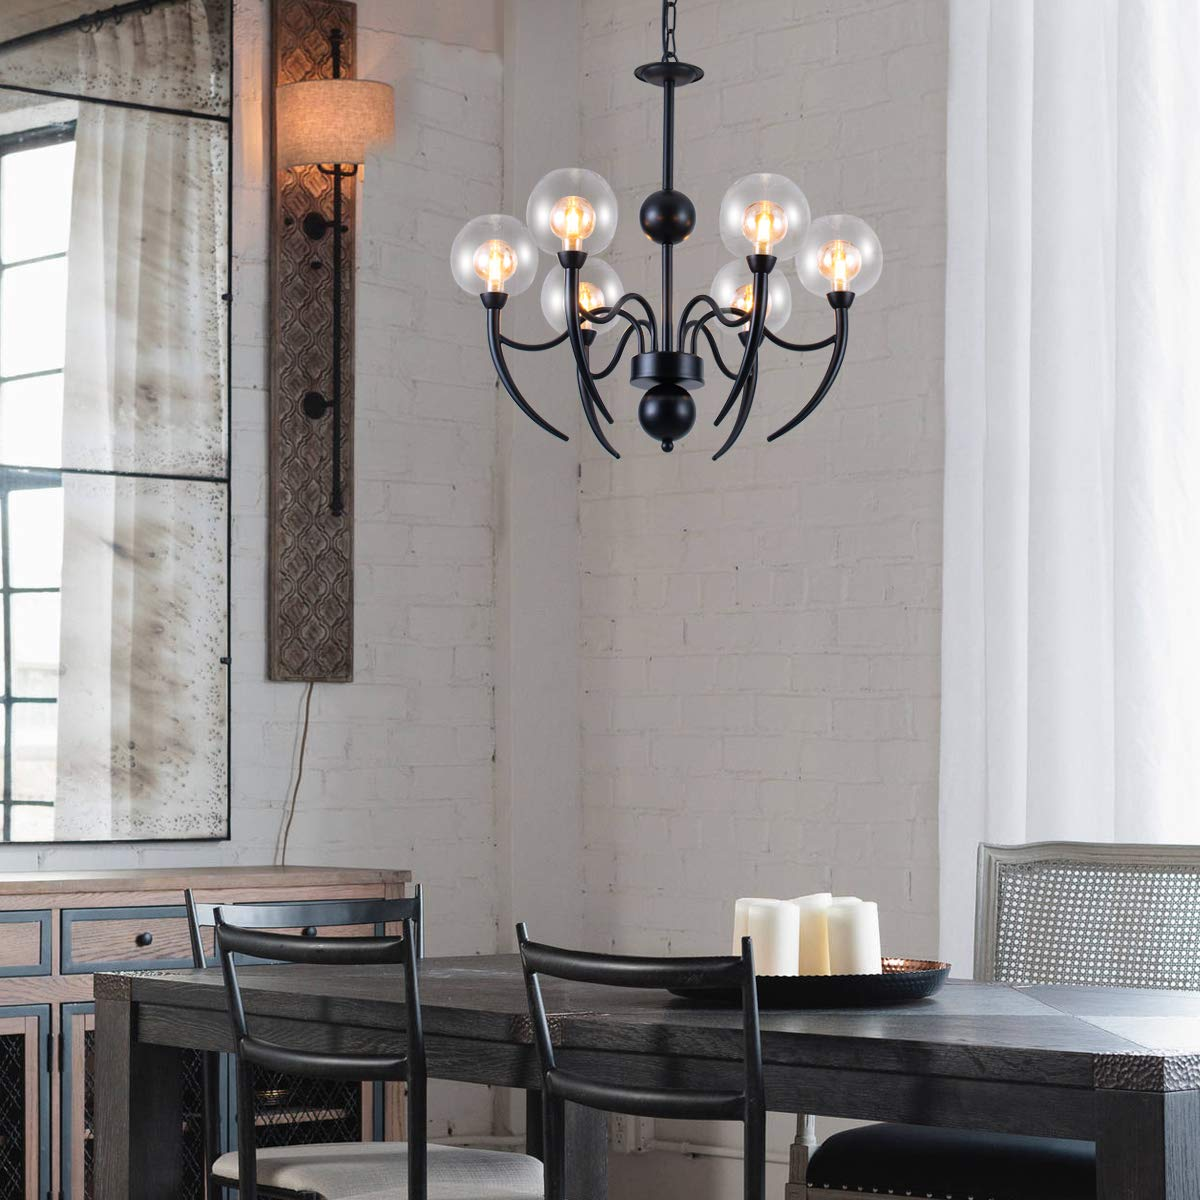 Industrial 6-Light Pendant Lighting with Unique Glass Shades, Black Chandelier with an Adjustable Chain, Lighting Fixtures Ceiling Chandelier for a Farmhouse, Bathroom, Kitchen, Living Room, Hotel